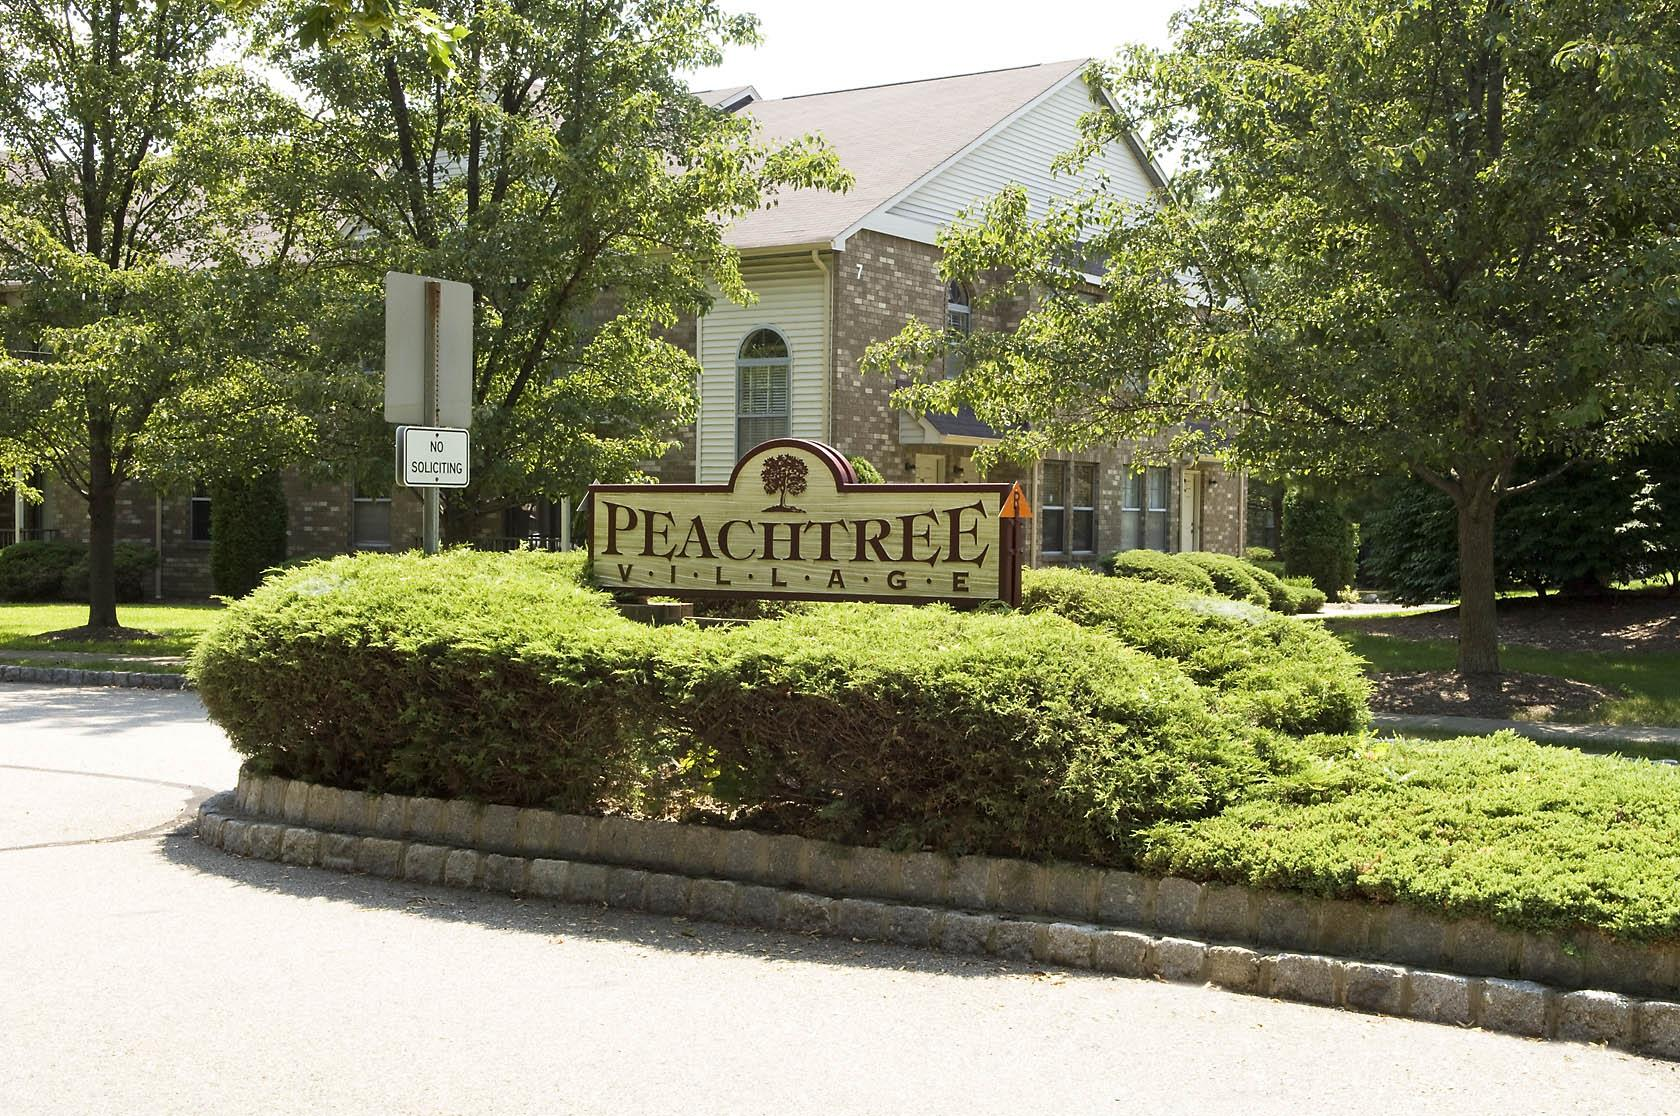 Images of 0513 PEACHTREE VILLAGE